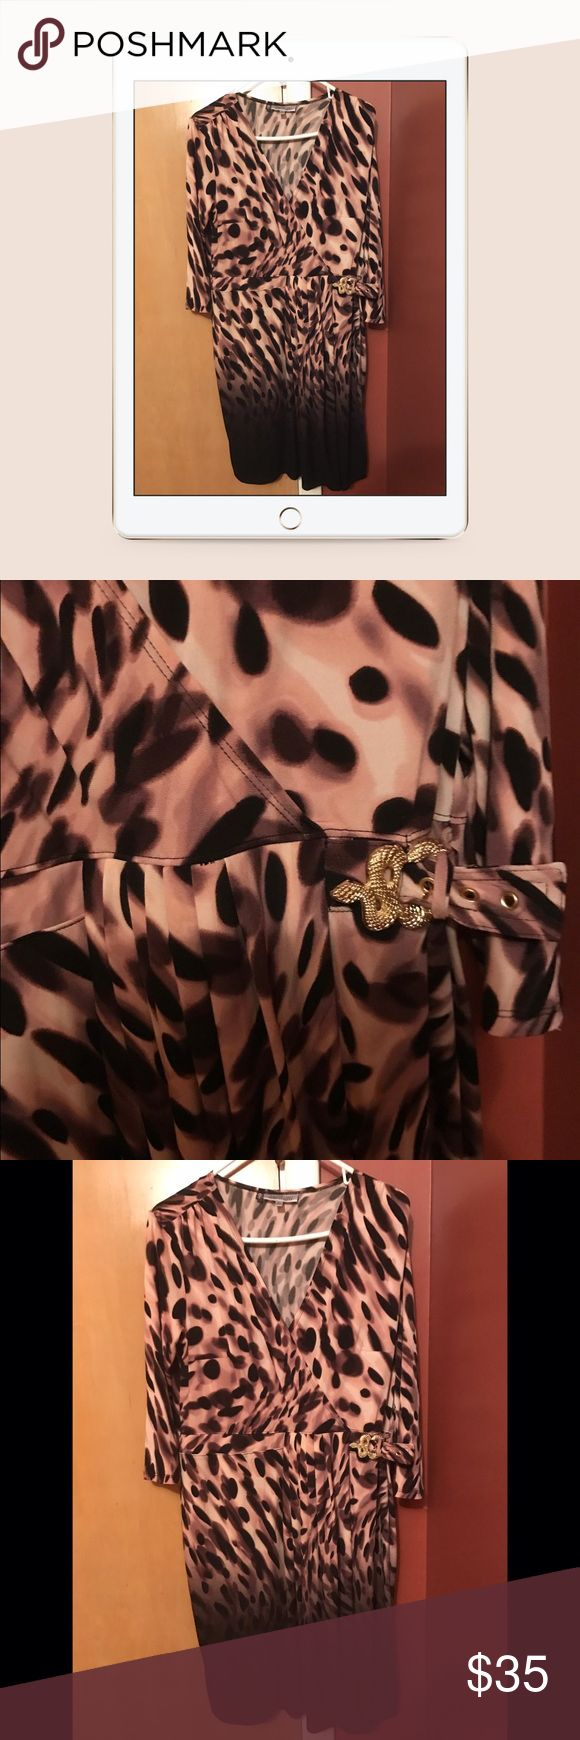 Xl sexy cheetah dress. Rawr👌🏻👌🏻👌🏻 Sexy sophisticated cheetah dress size is xl, excellent condition Jennifer Lopez Dresses